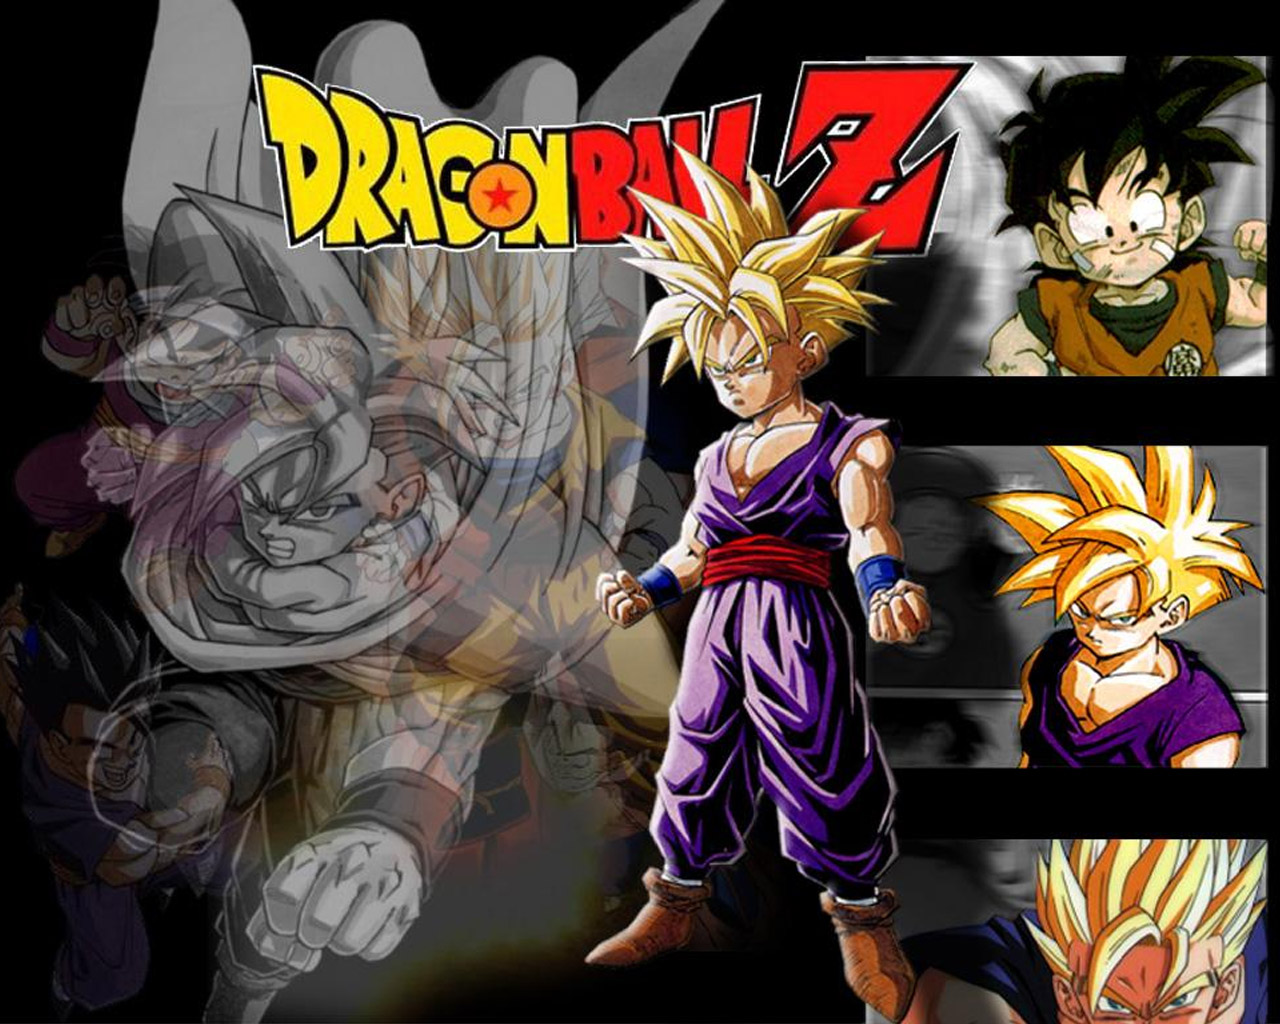 http://2.bp.blogspot.com/-6hbXe9GkkIw/TwfydkH5lFI/AAAAAAAAAjQ/IS3ggp1gAYE/s1600/Dragon+Ball+Wallpapers+HD+4.jpg